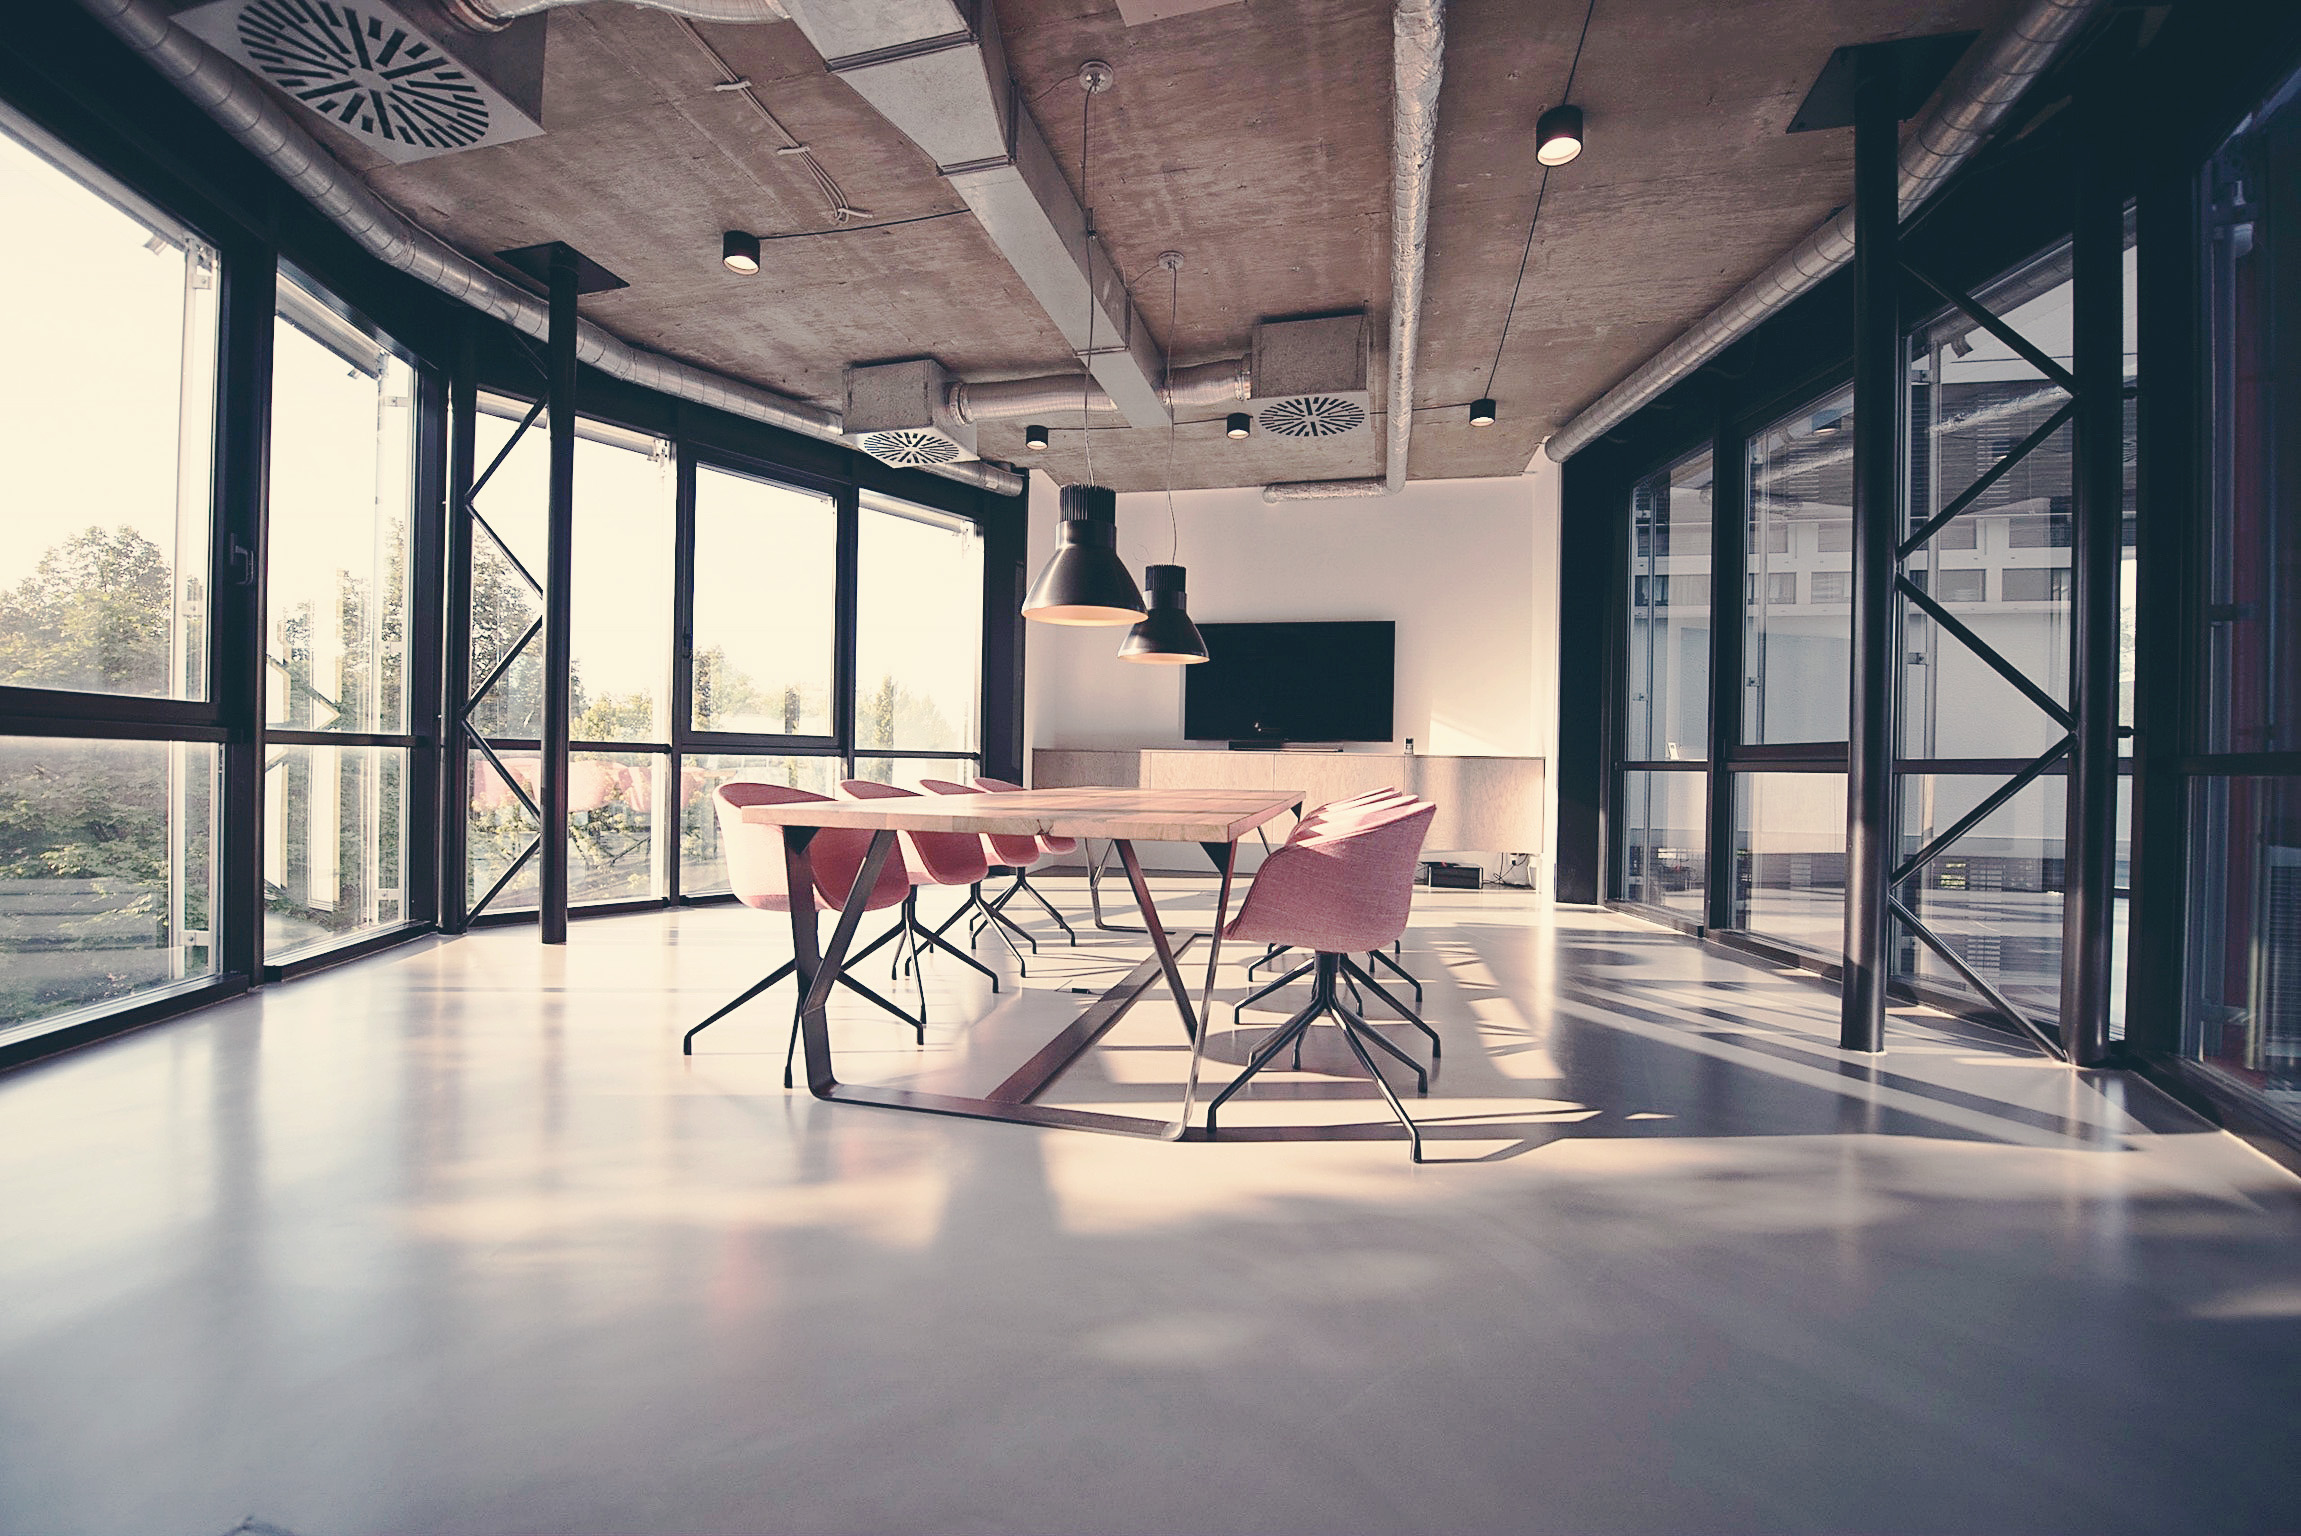 3 Ways Employers Can Make the Interviewing Process Less Stressful